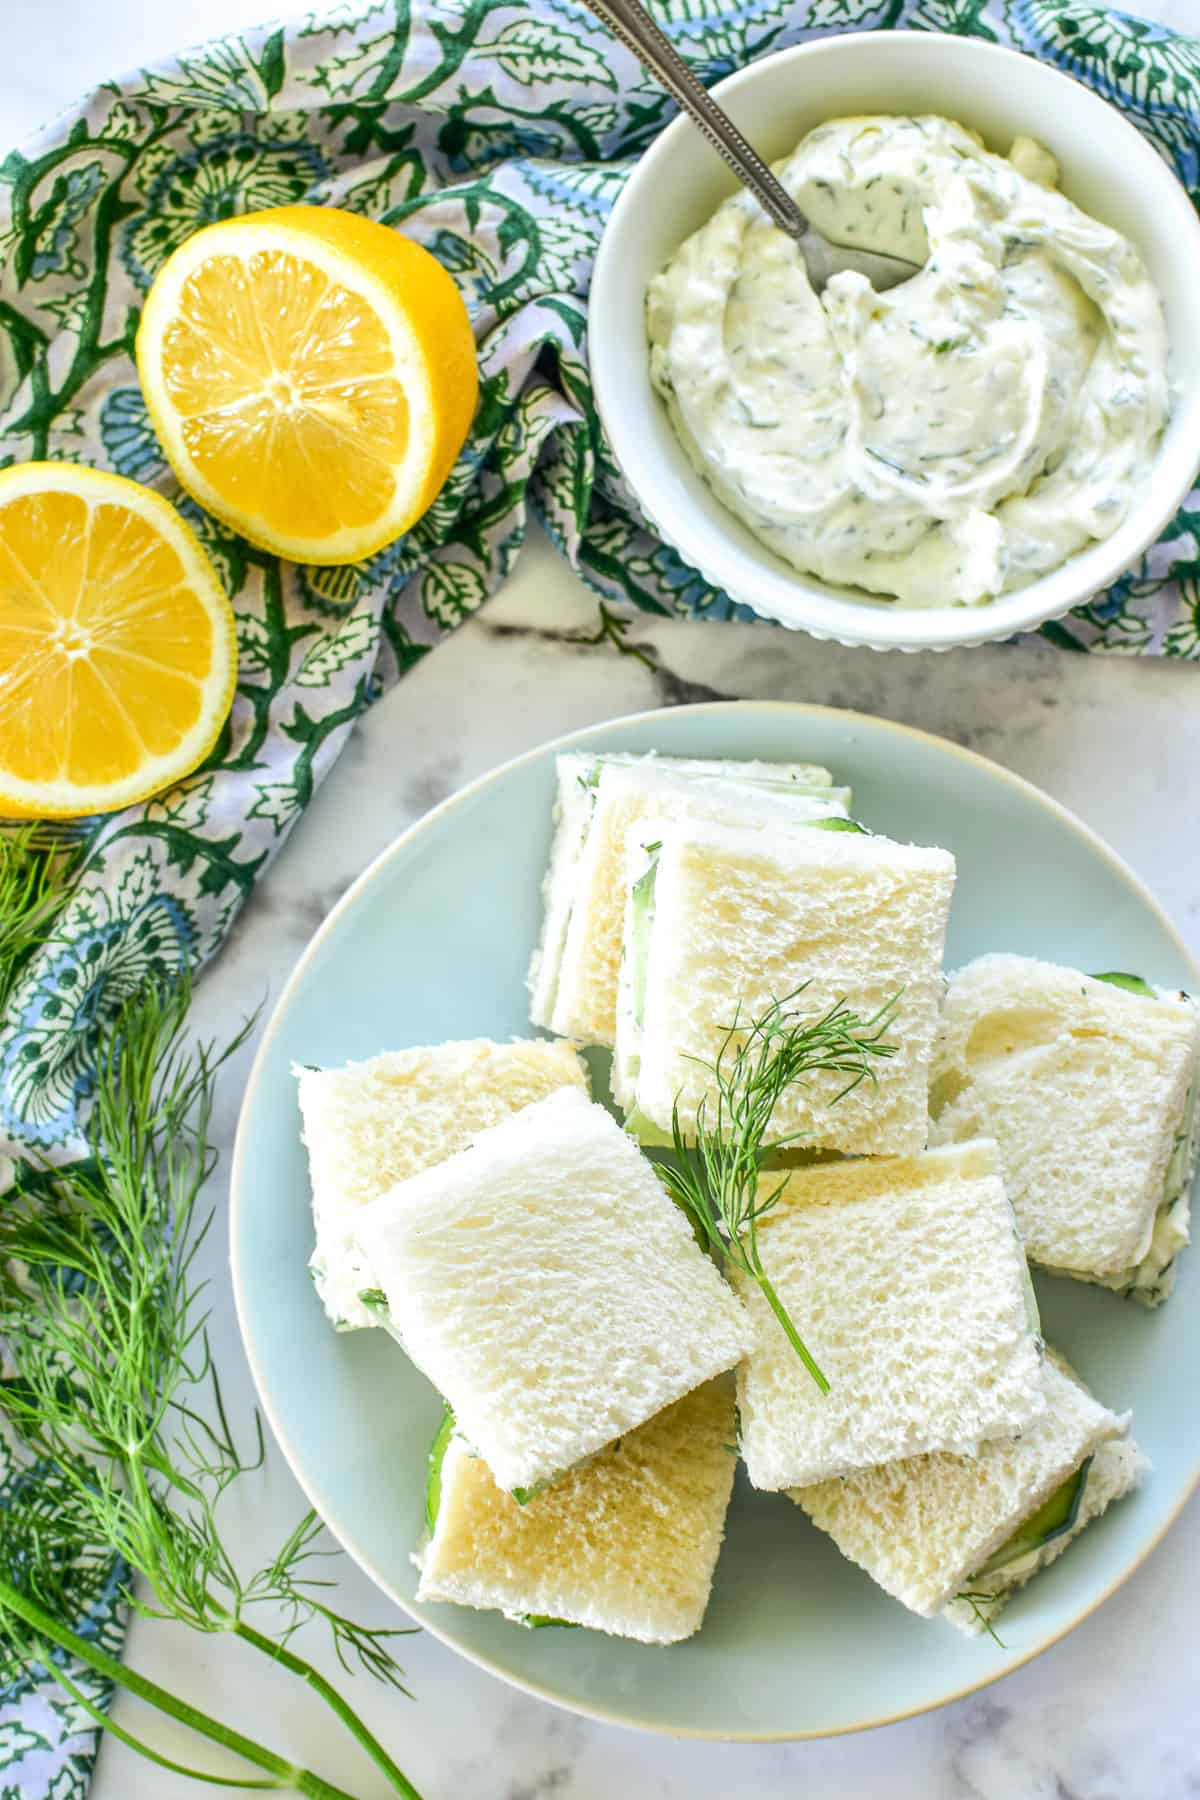 Overhead image of Cucumber Sandwiches on a light blue plate with fresh lemons